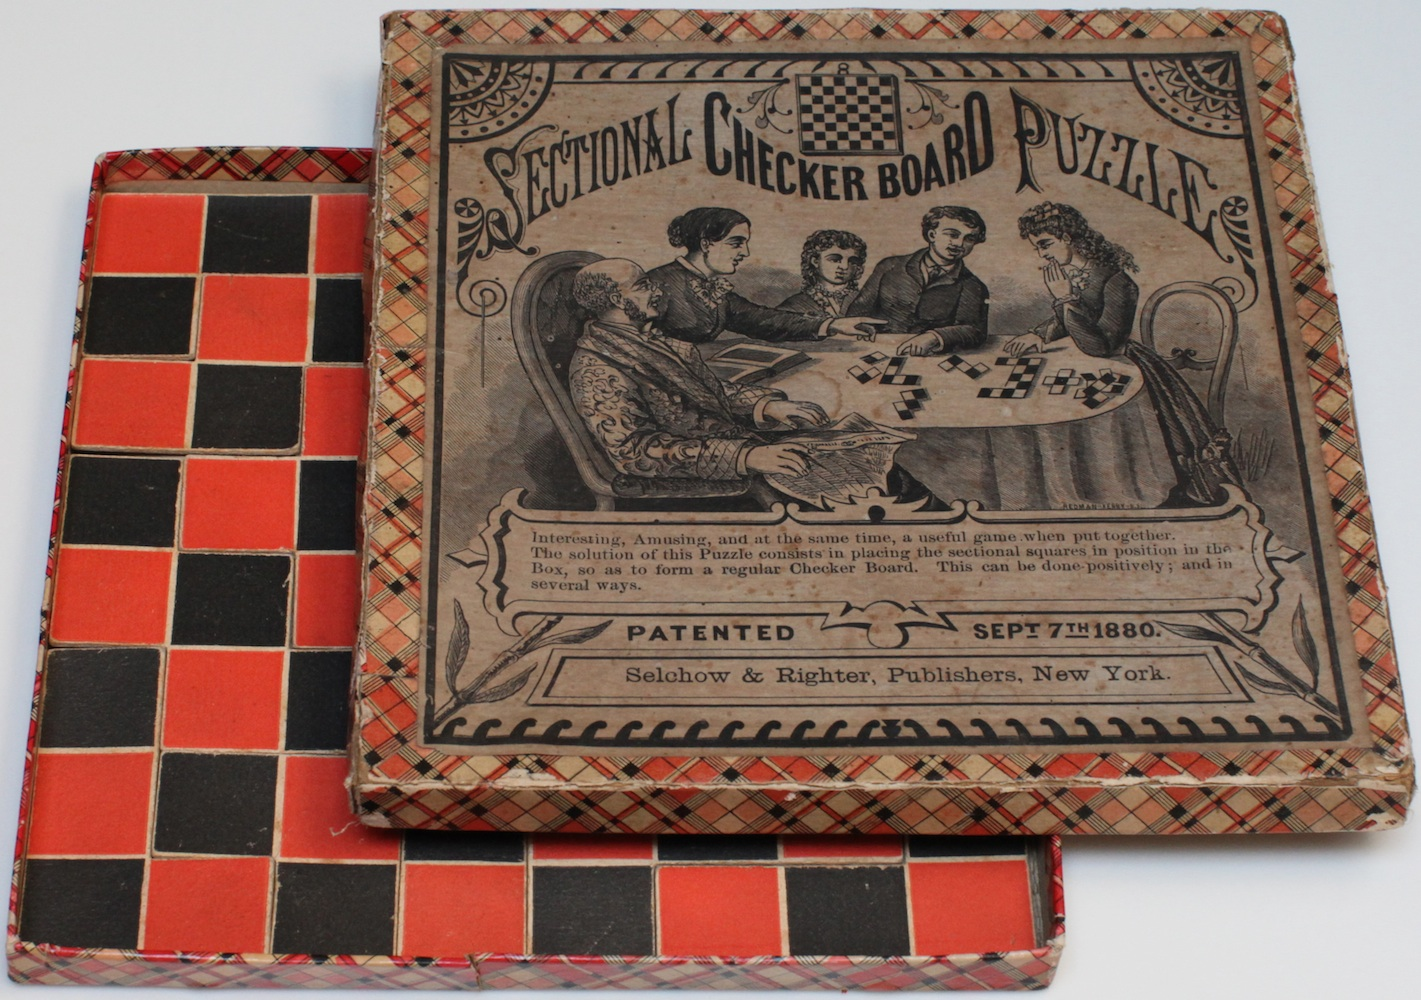 Sectional Checkerboard Puzzle